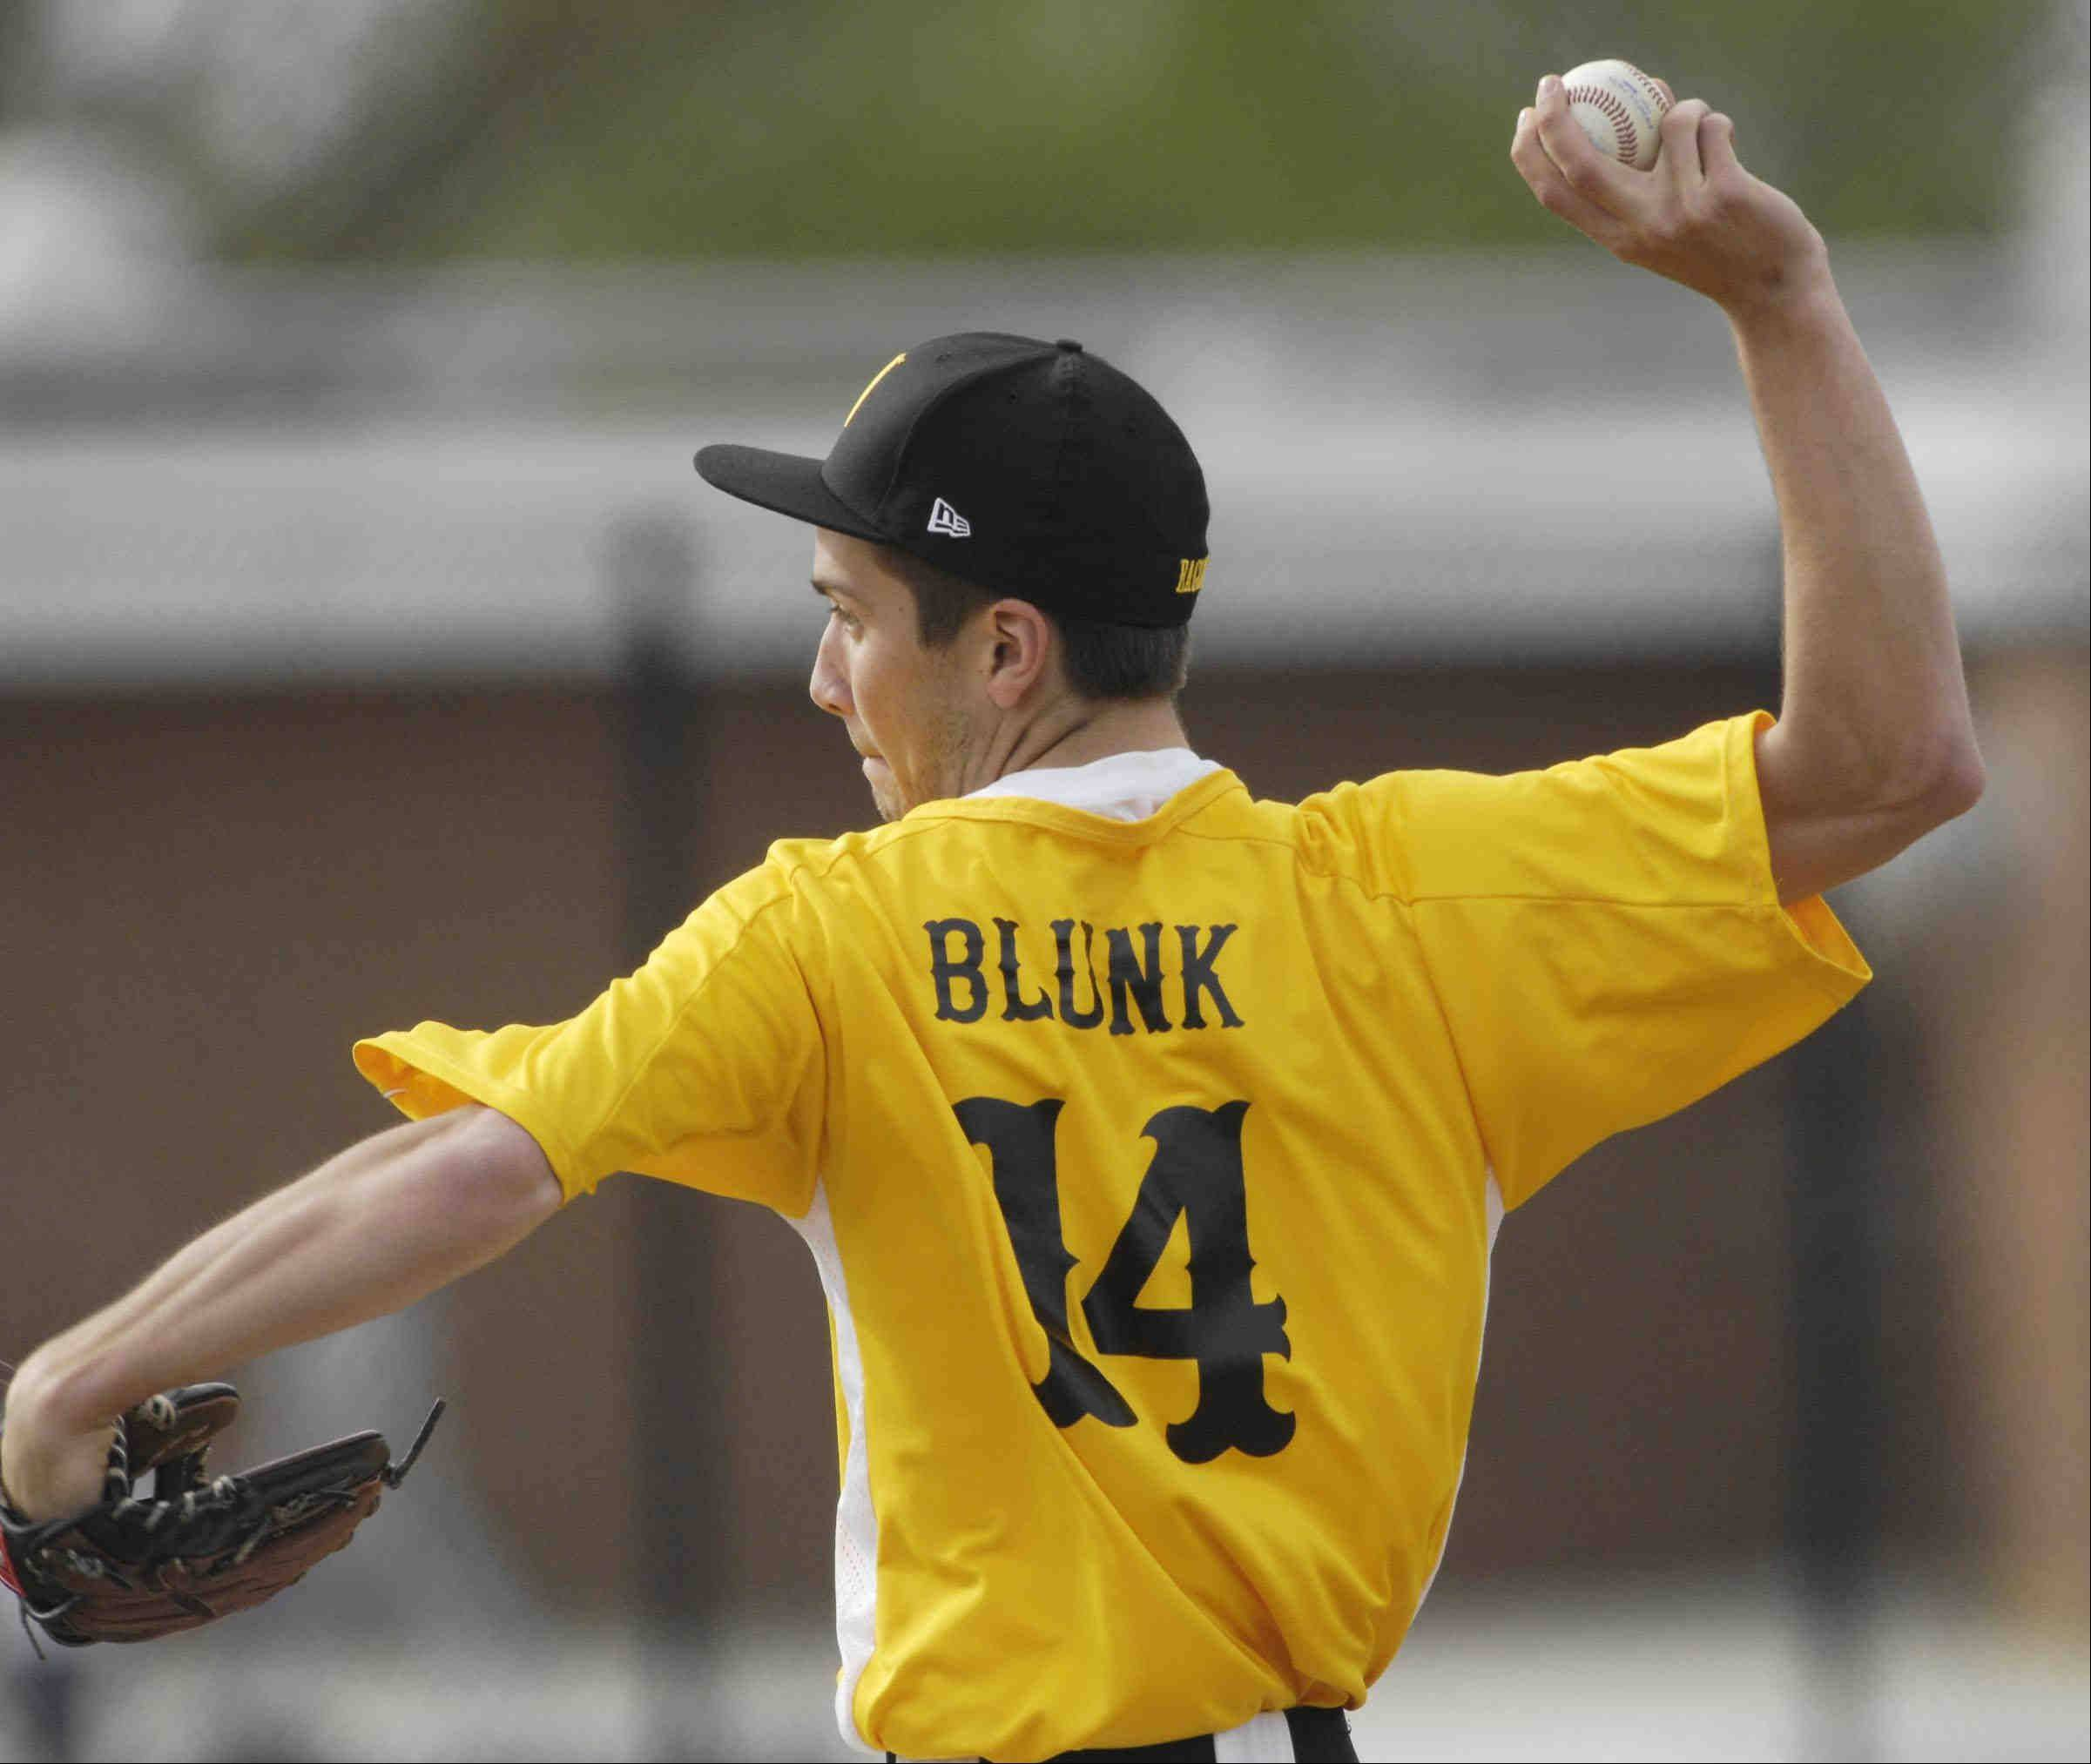 Jacobs starting pitcher Evan Blunk against Dundee-Crown Monday in Carpentersville.